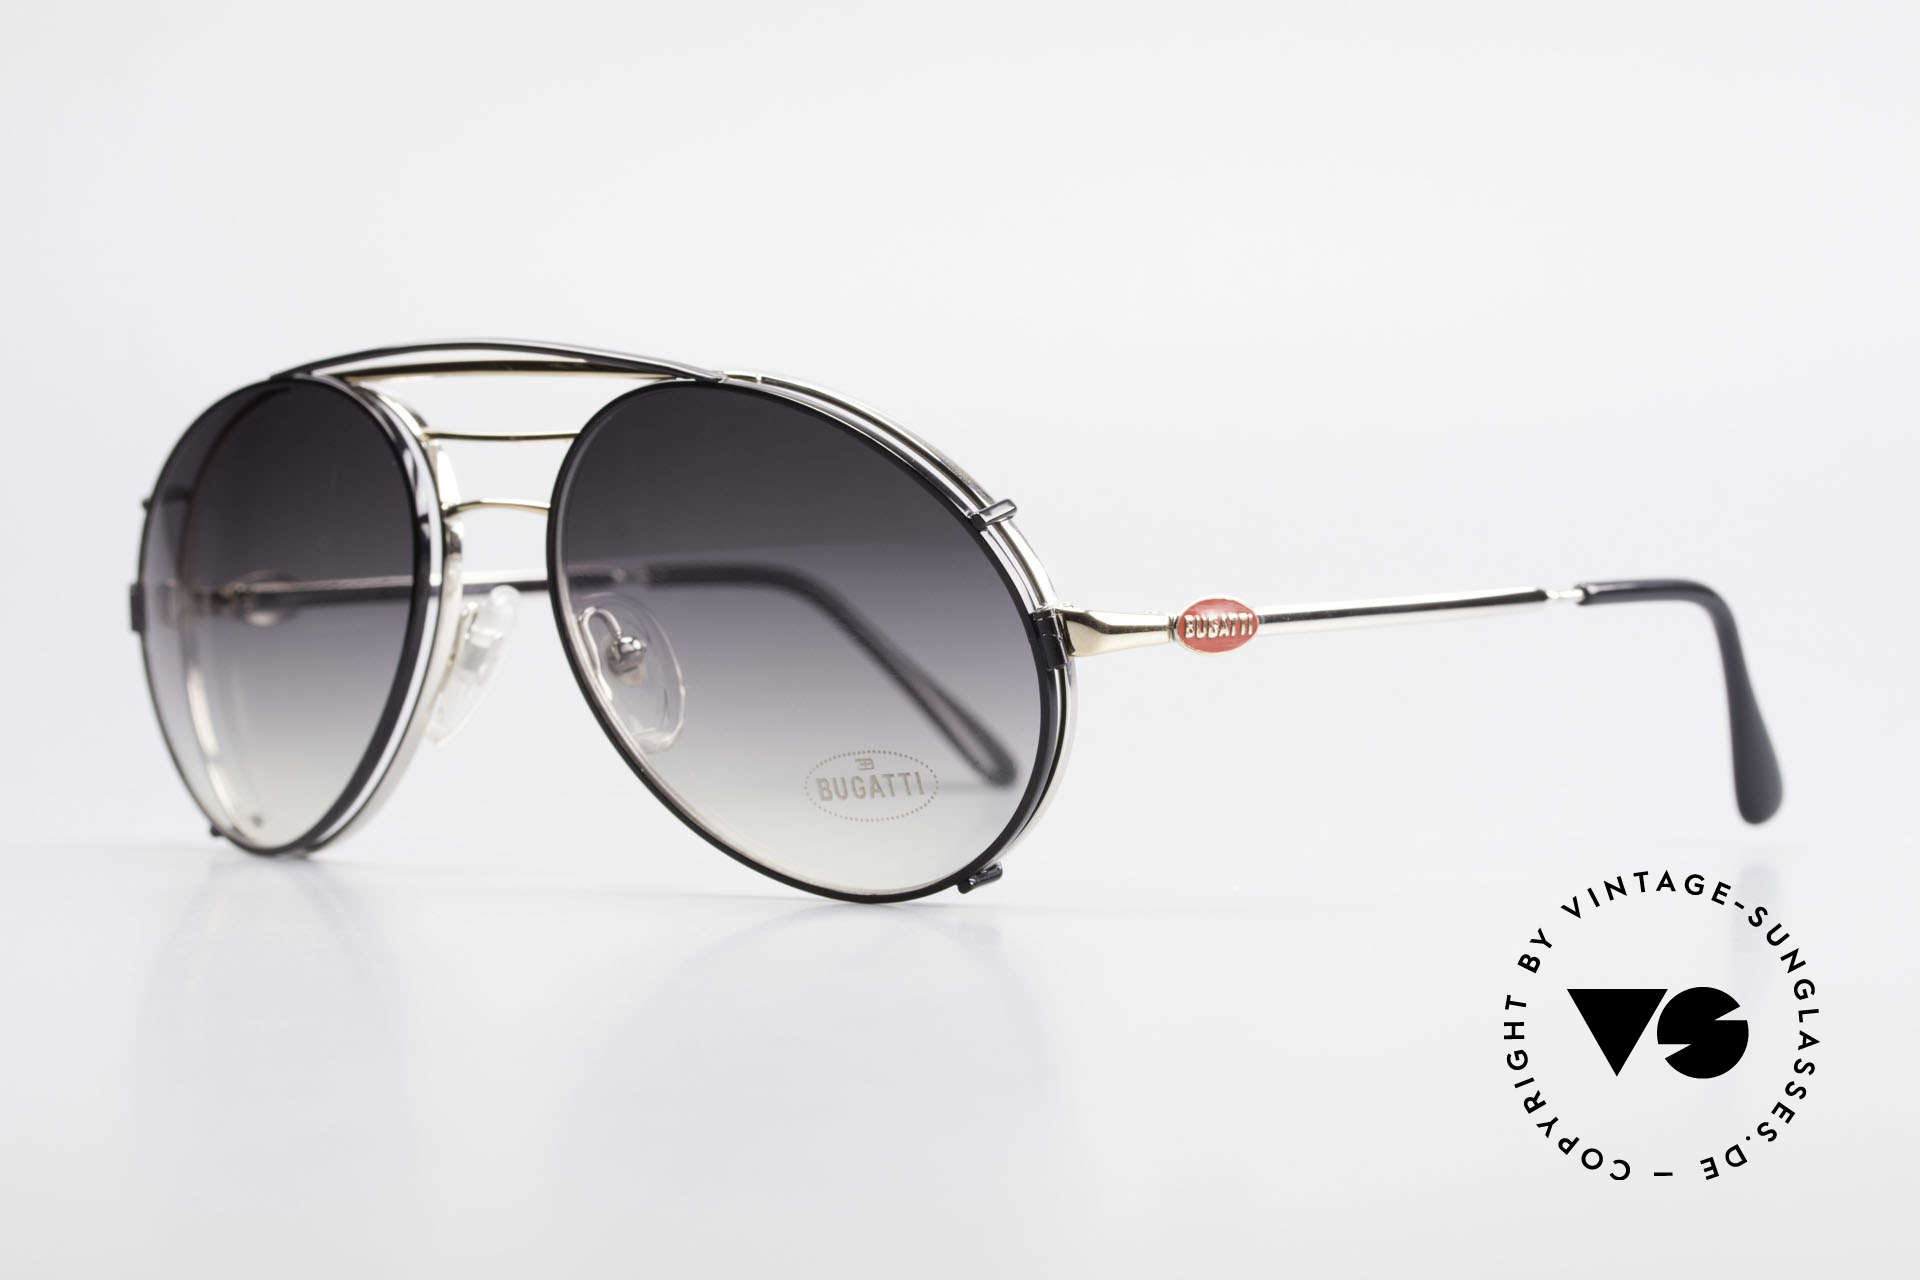 Bugatti 65536 Vintage Glasses with Sun Clip, eyeglass-frame with practical clip (sun lenses), Made for Men